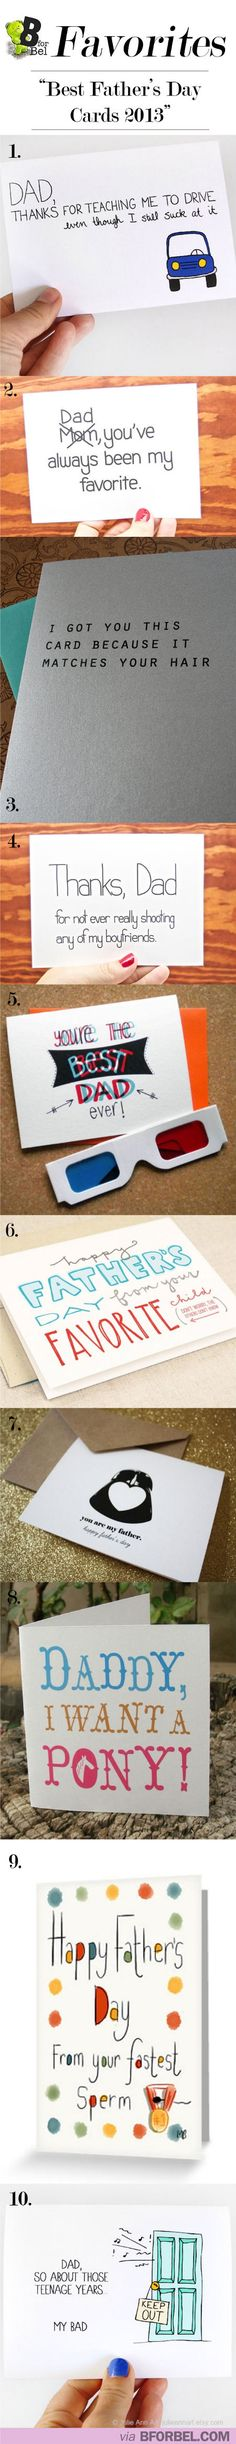 Father's Day cards - funny! http://www.giftideascorner.com/christmas-gifts-dad